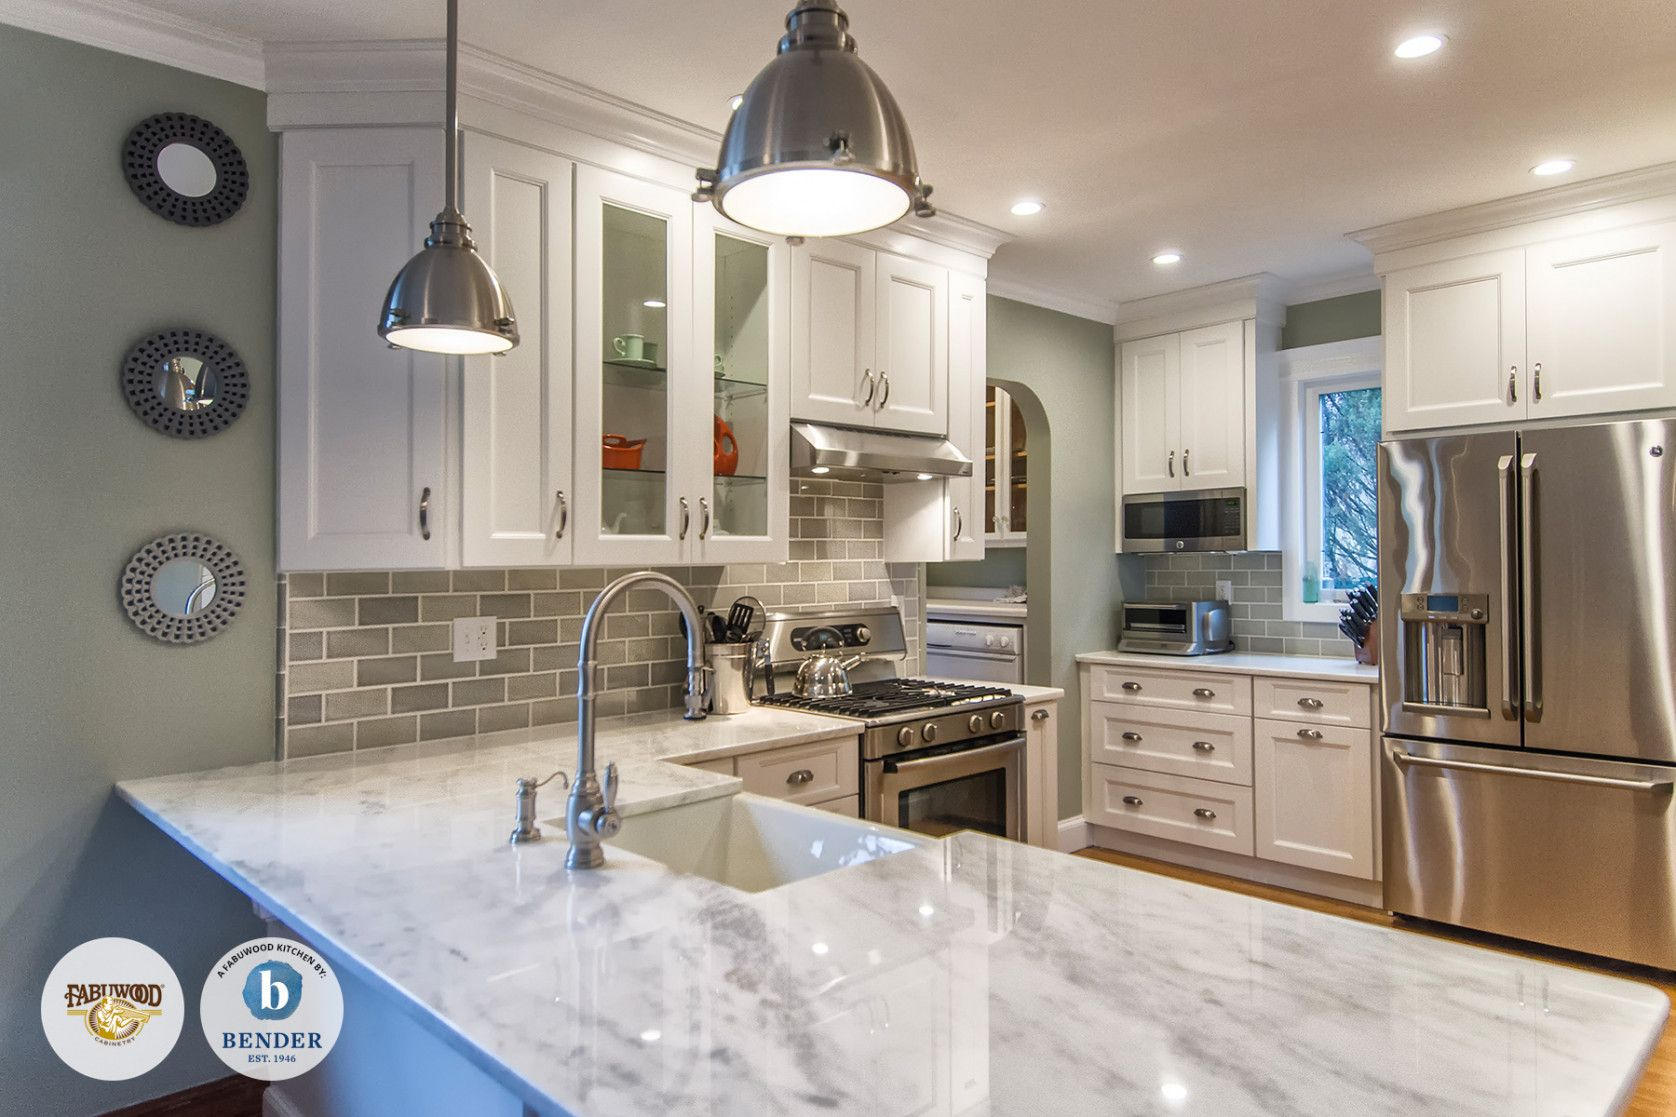 Merveilleux 77+ Wholesale Kitchen Cabinets Perth Amboy Nj   Kitchen Cabinet Inserts  Ideas Check More At